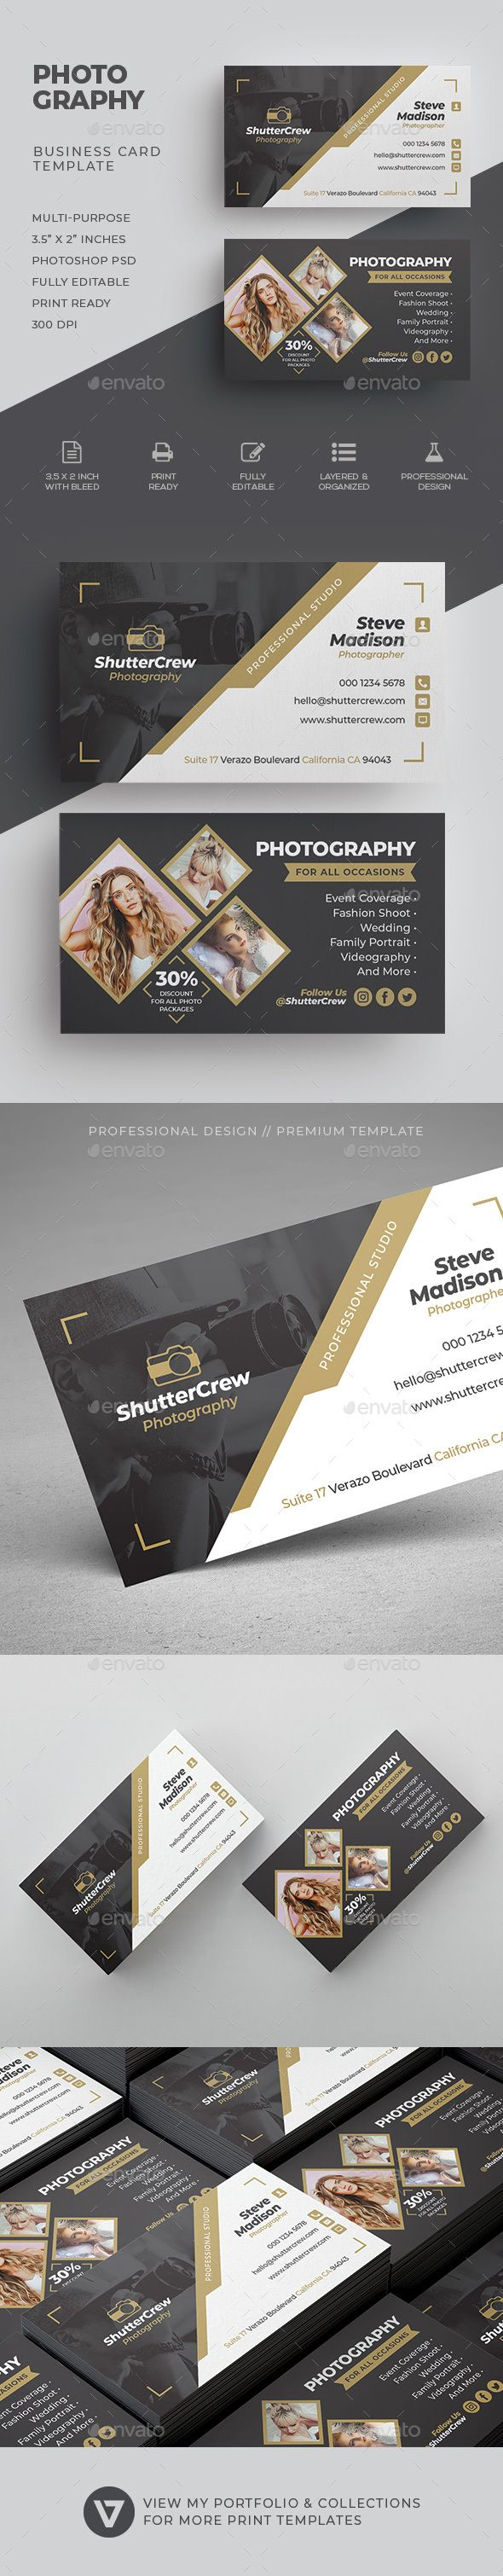 Photography Business Card Photography Business Cards Template Photography Business Cards Photographer Business Card Template